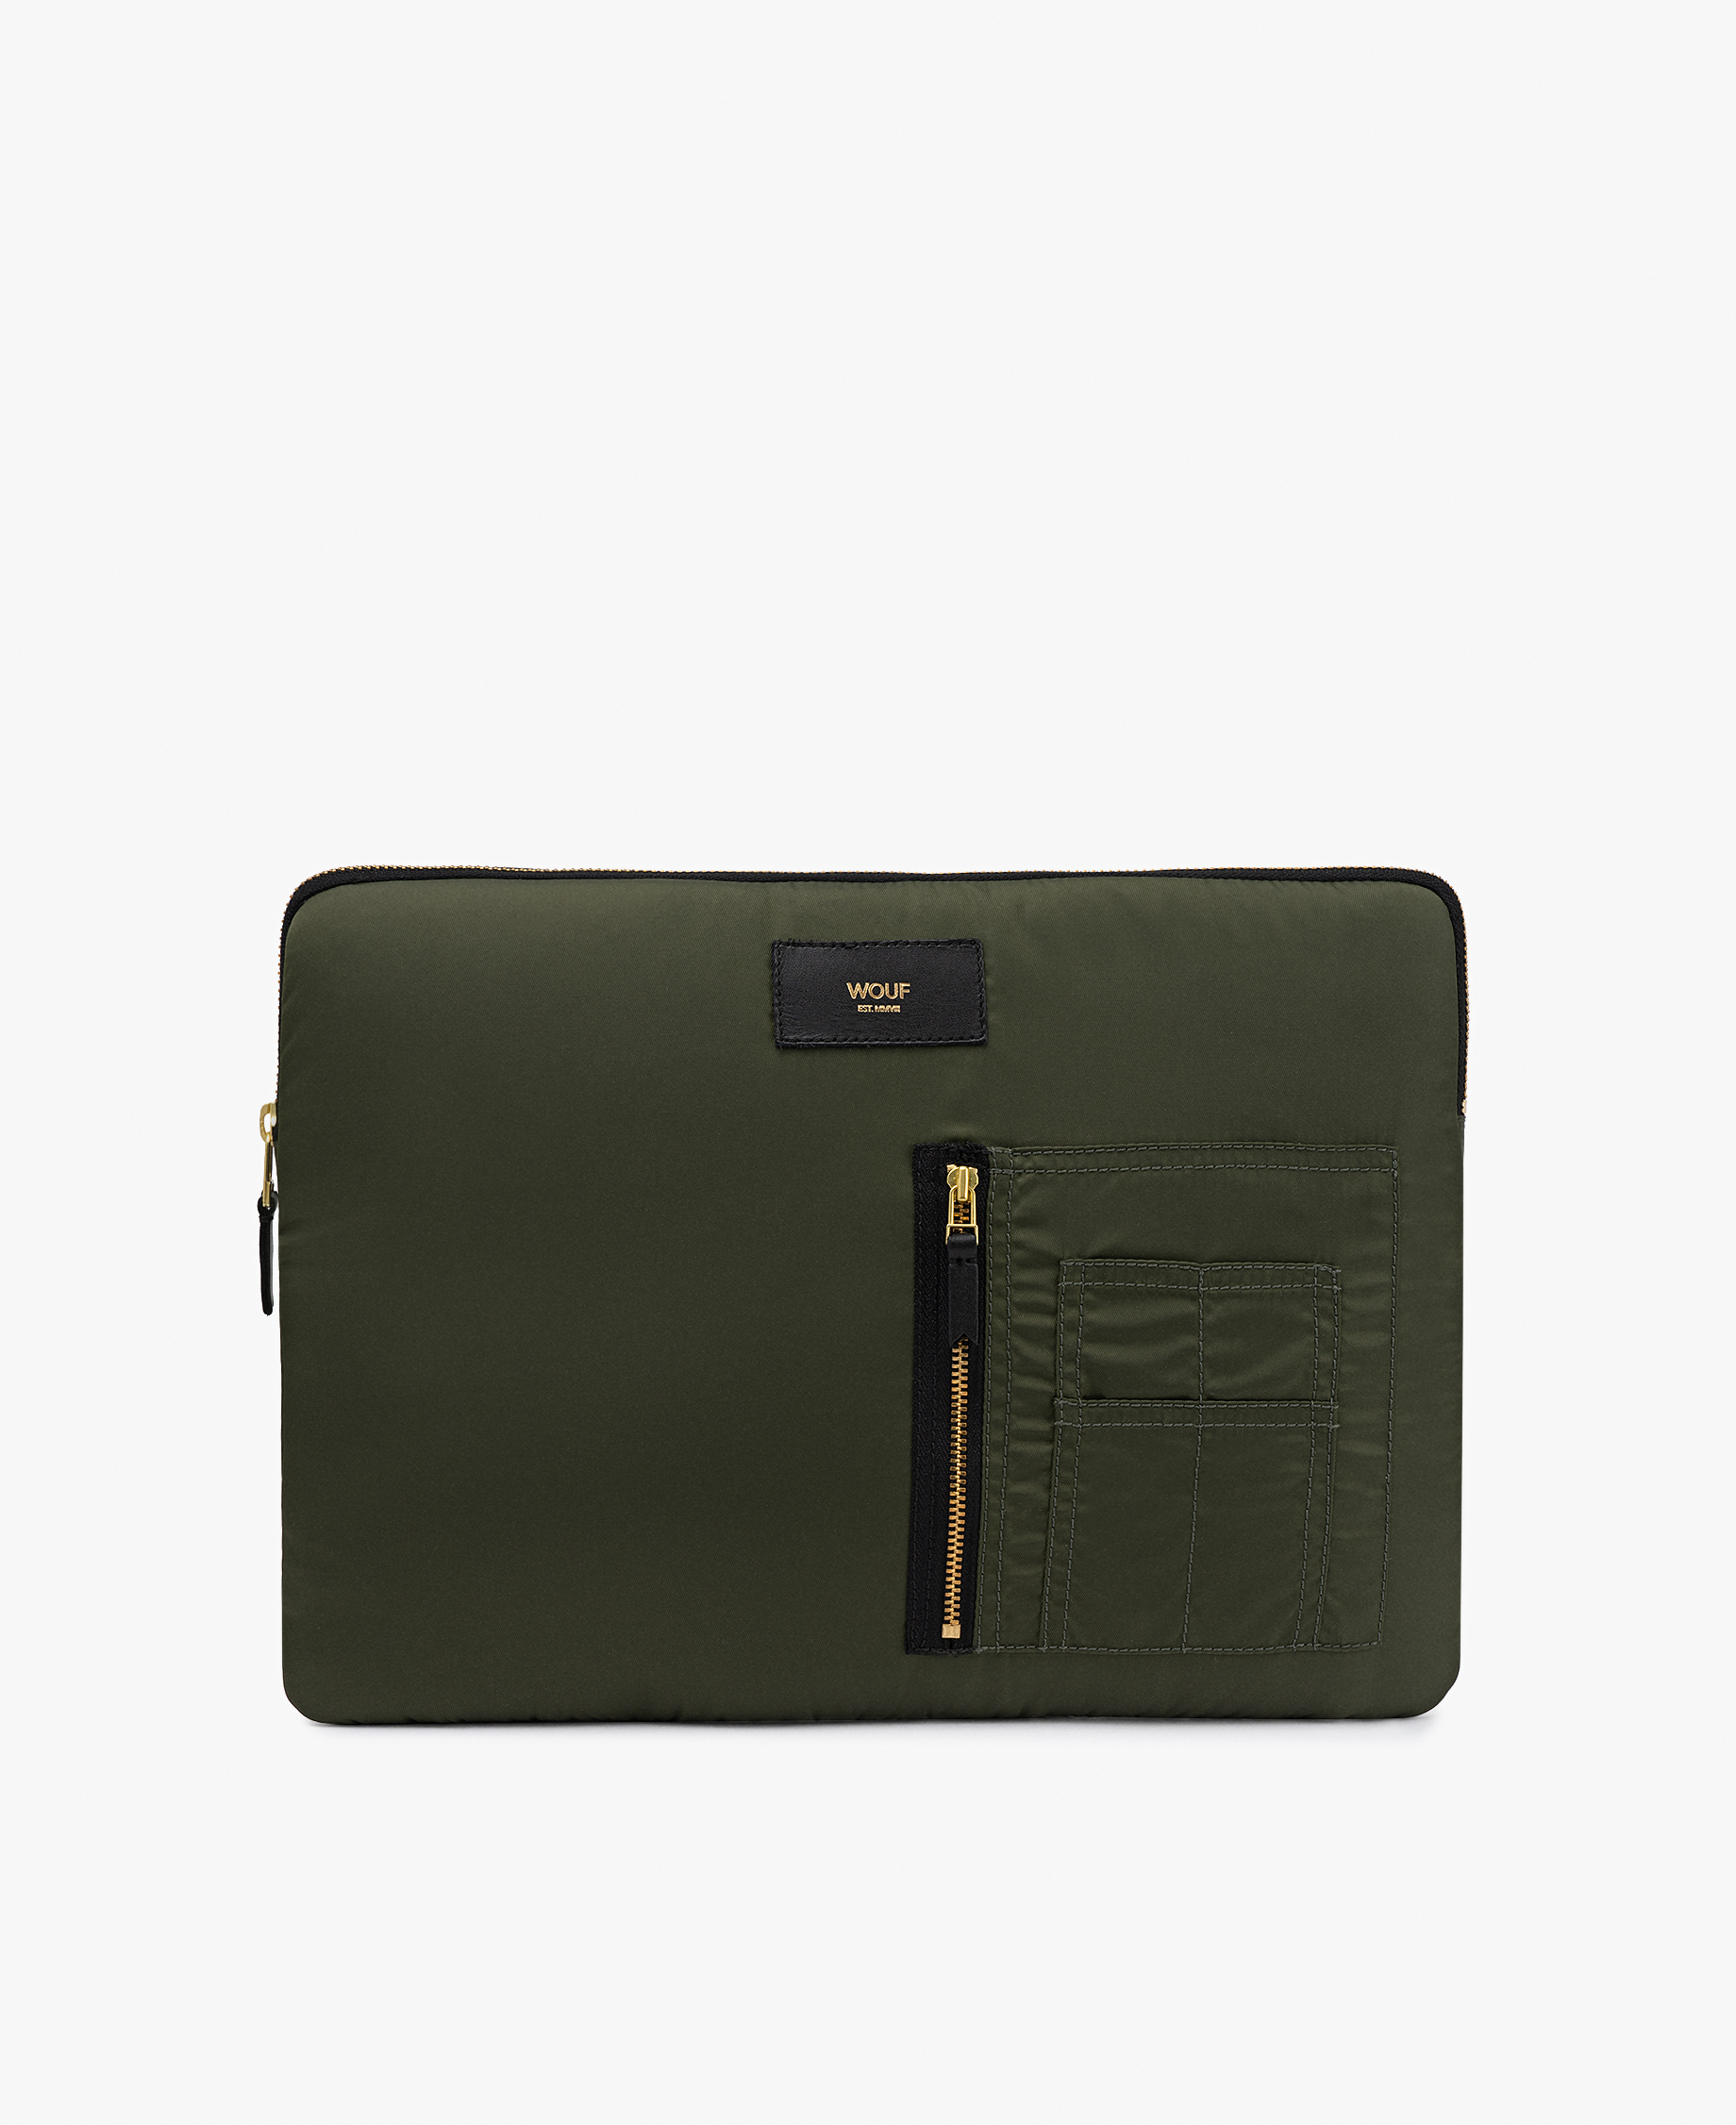 camo-bomber-13-inch-laptop-sleeve-wouf